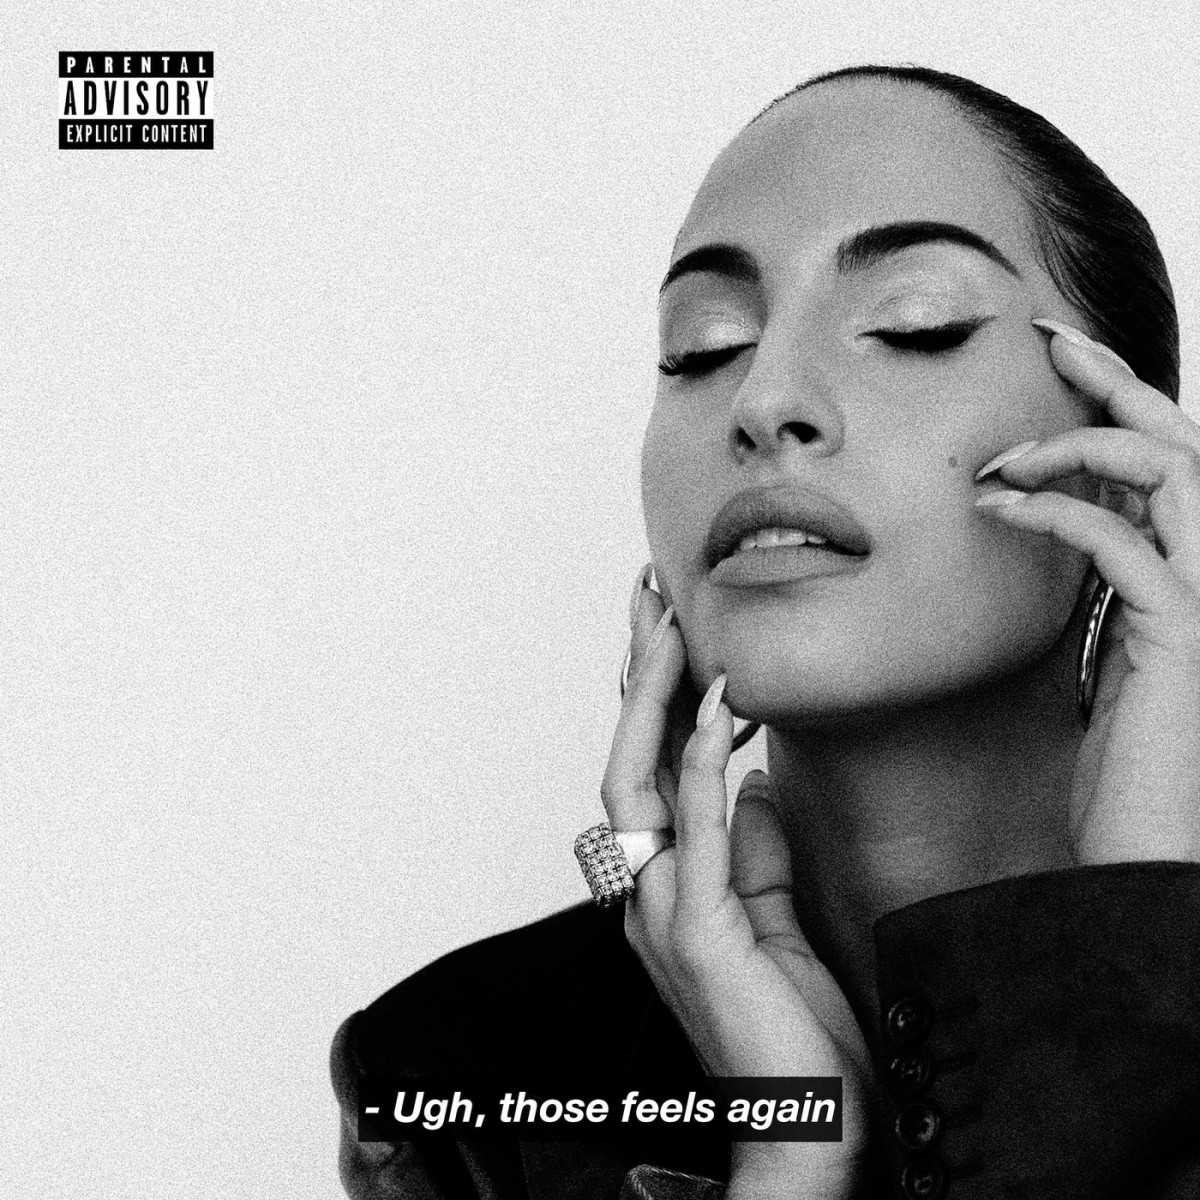 Snoh Aalegra — «- Ugh, those feels again»